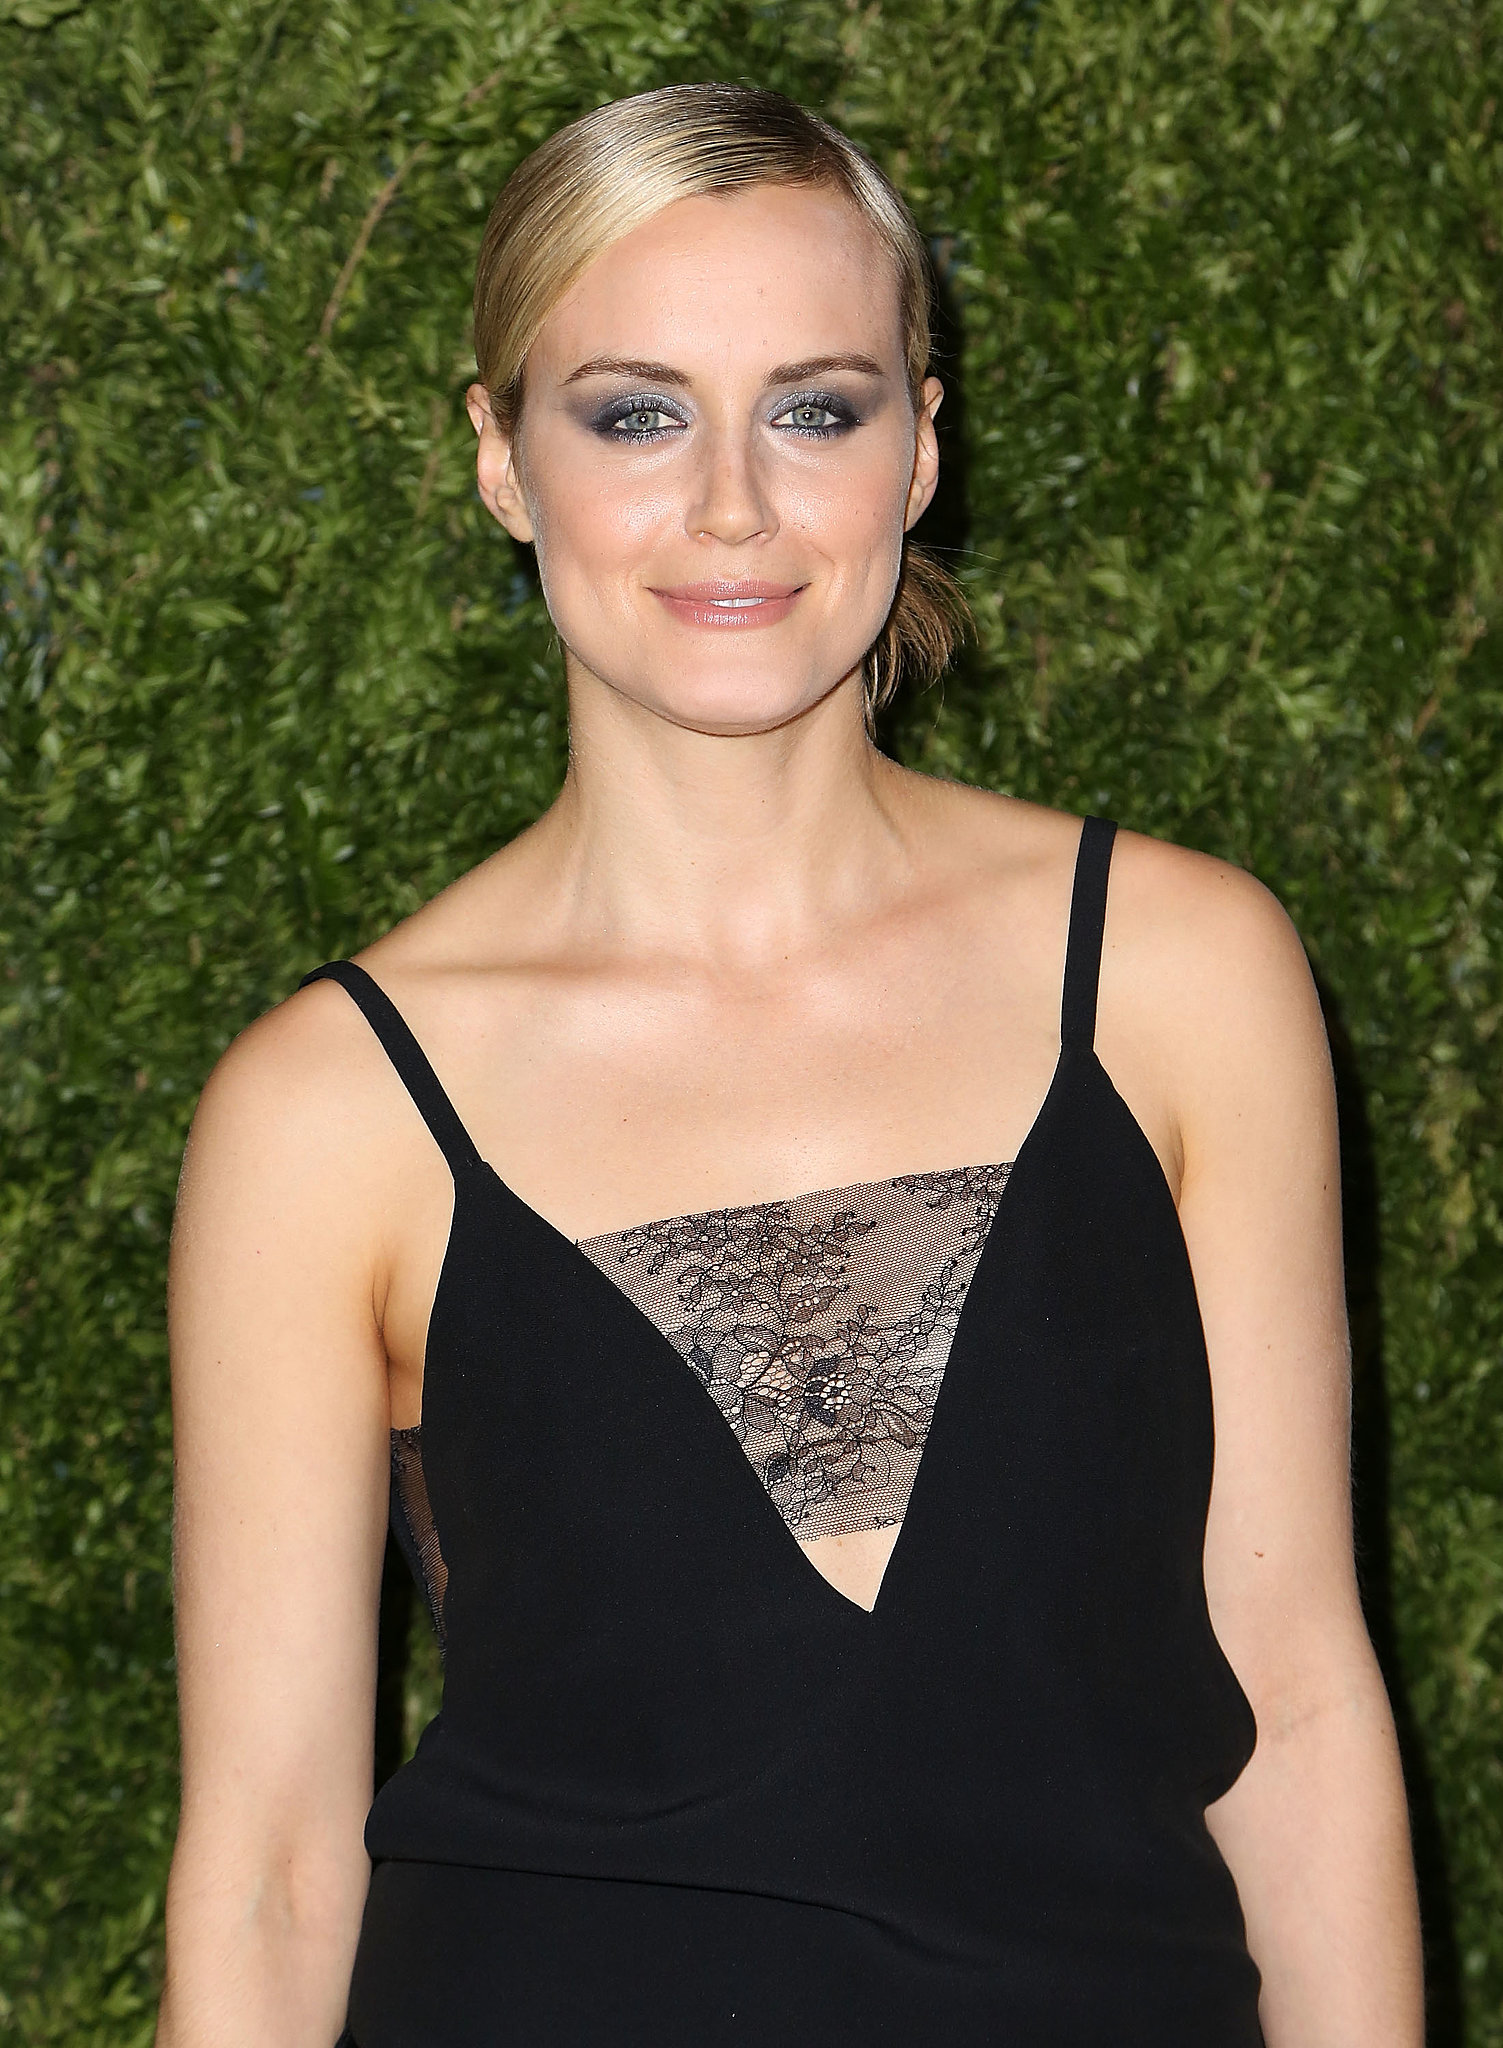 Taylor Schilling went high drama with her eye makeup and sleek with her updo.